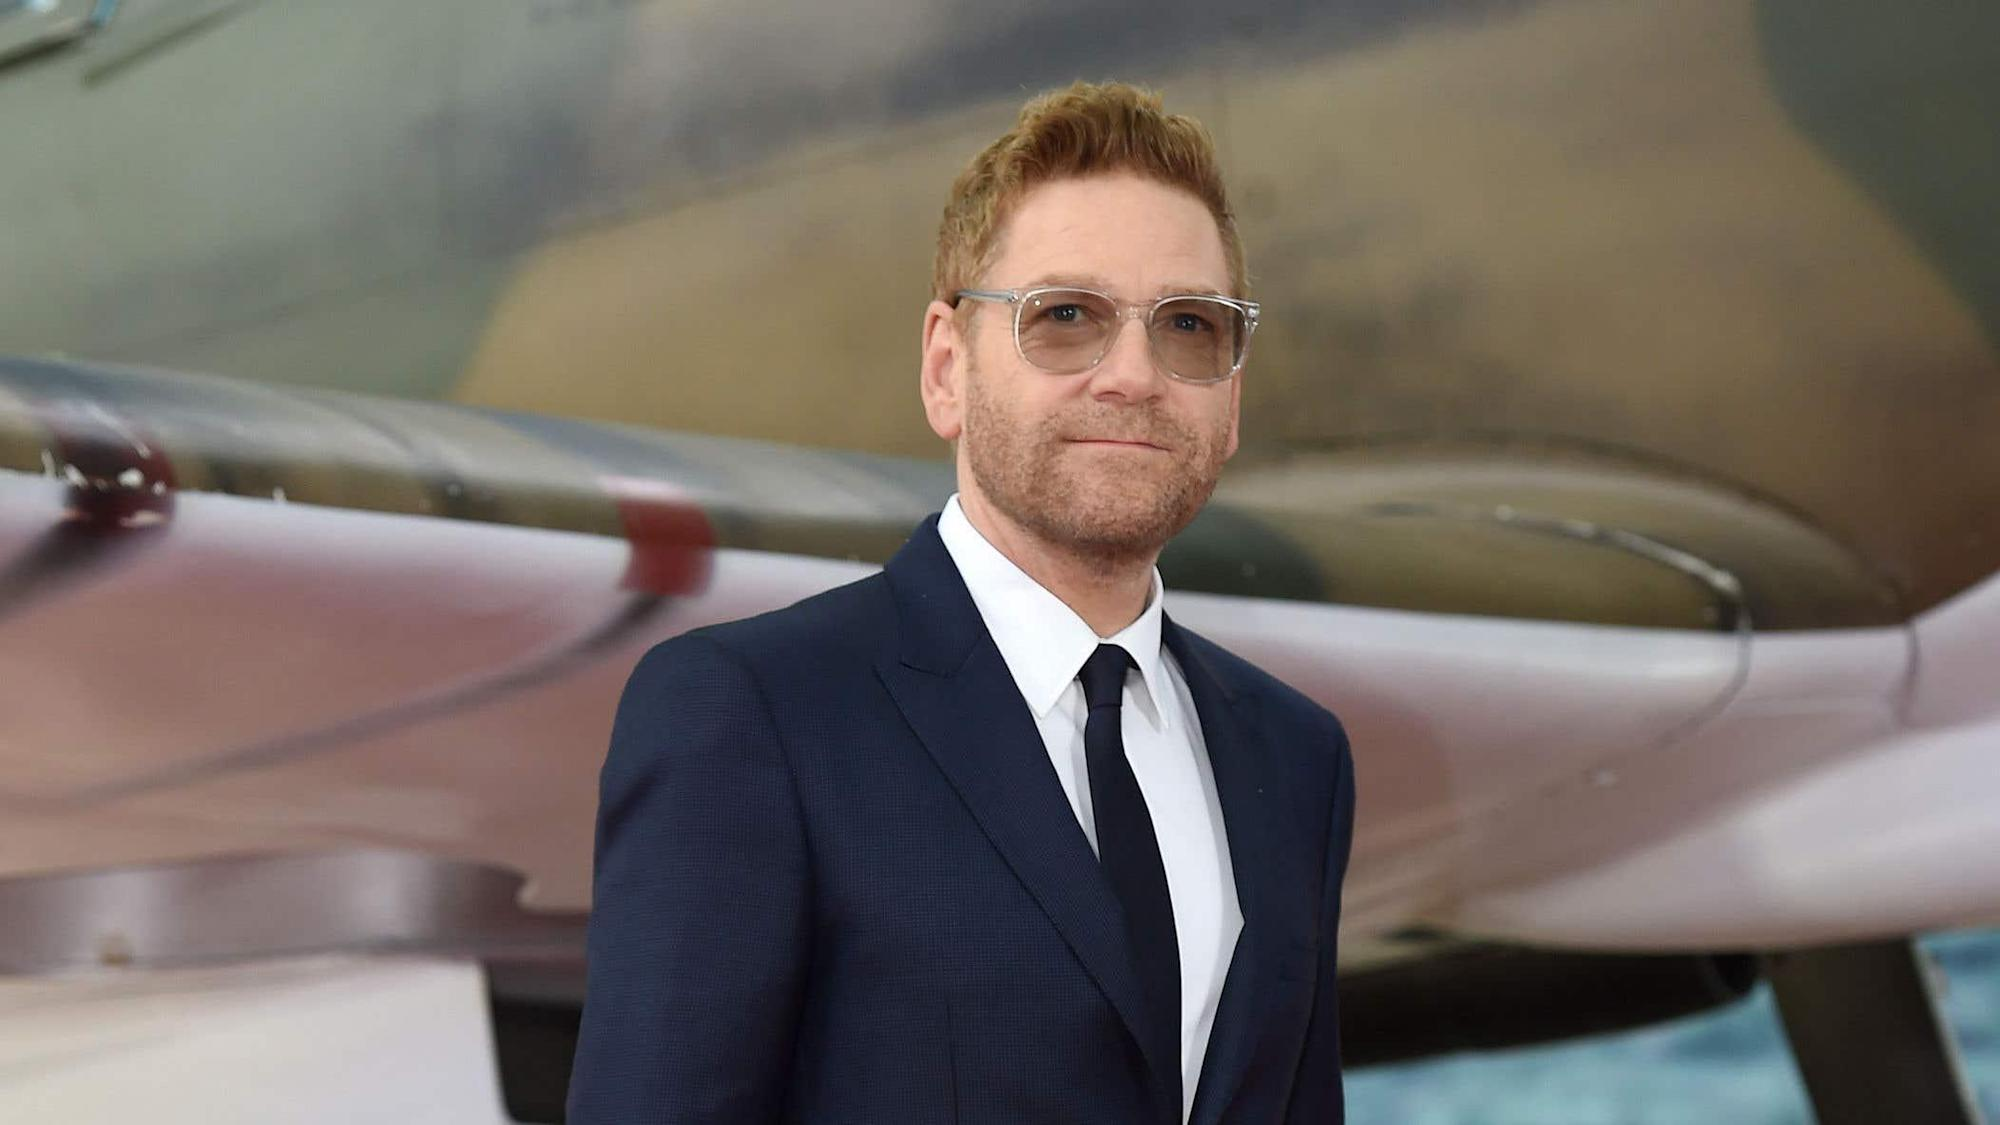 Sir Kenneth Branagh to star in drama about Boris Johnson's handling of pandemic